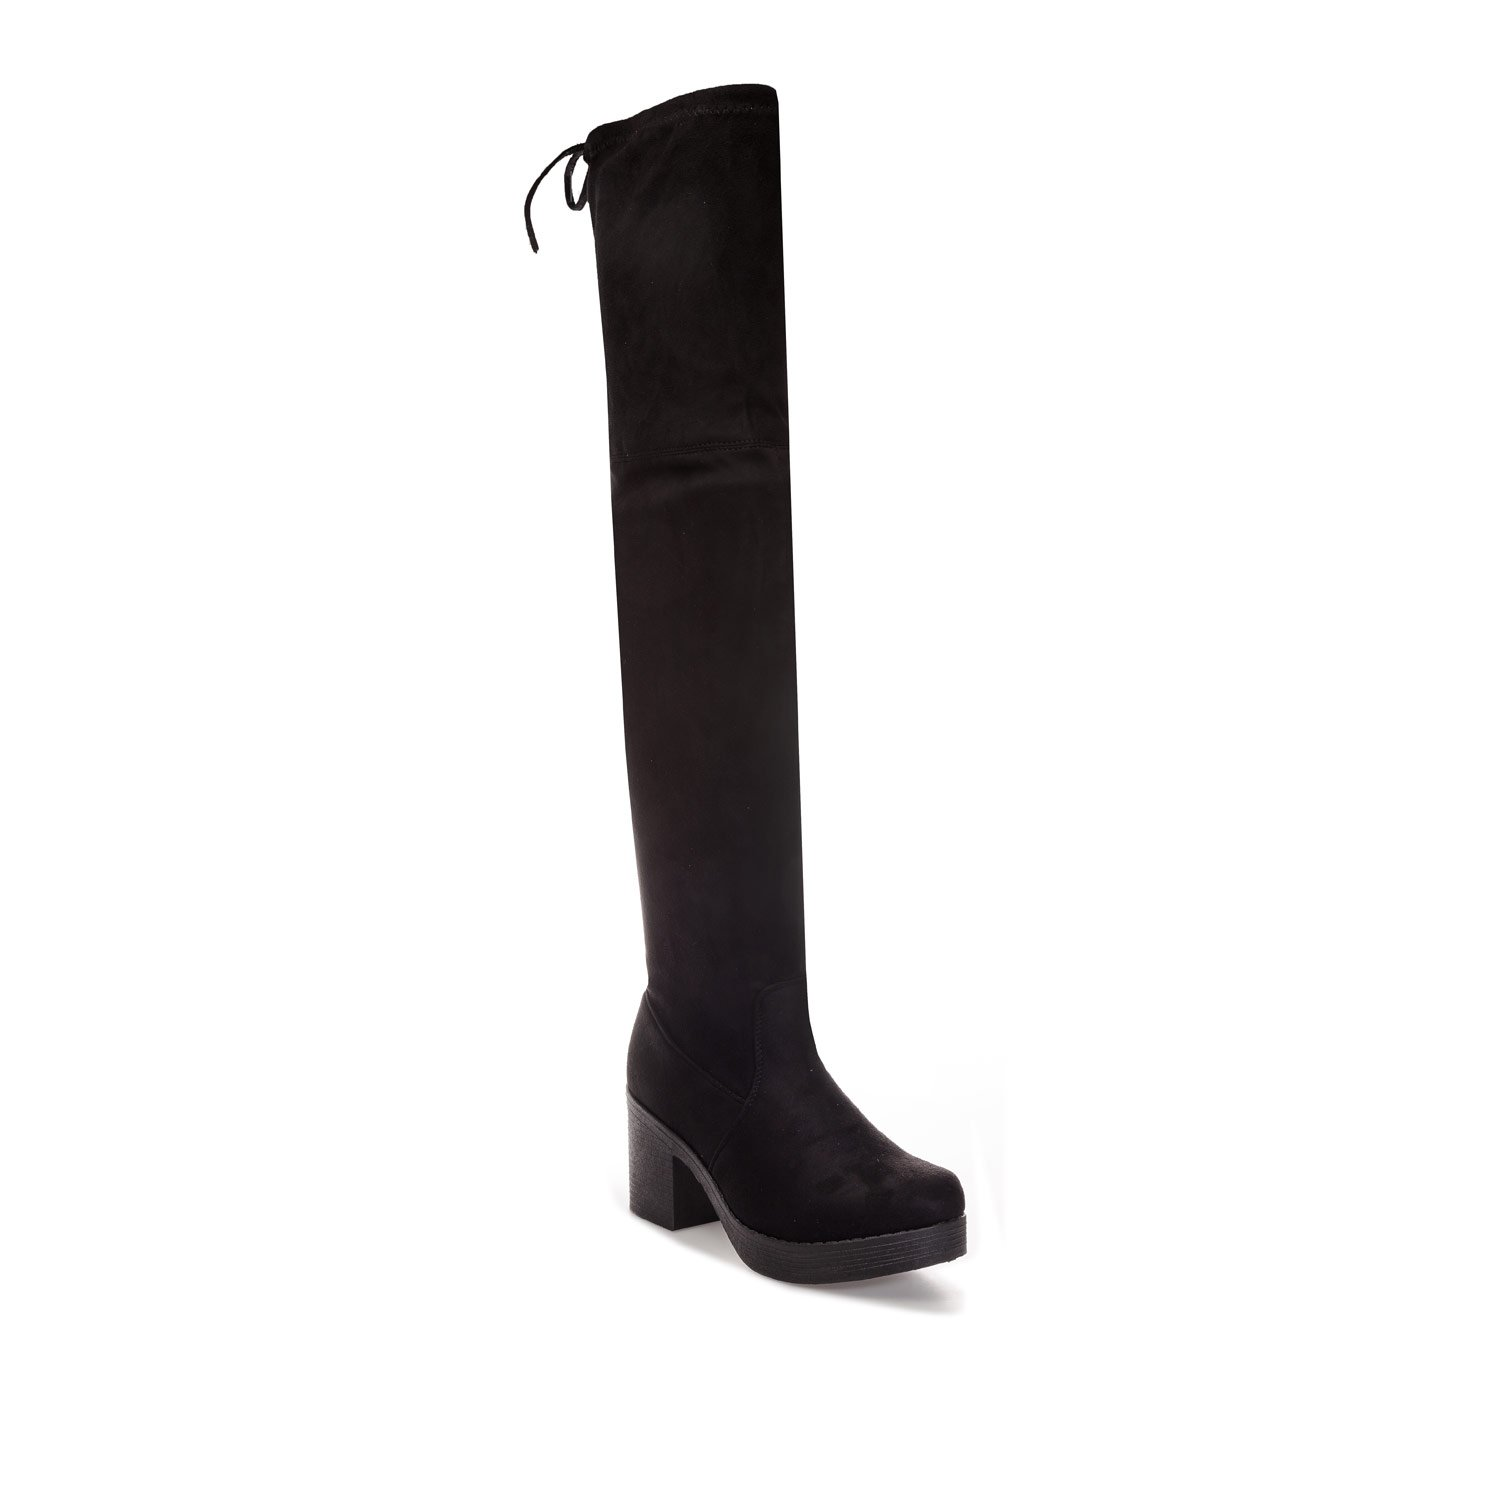 84315bc6220 Truffle Collection Womens Womens Block Heel Over The Knee Boots in Black -  UK 6  Amazon.co.uk  Shoes   Bags